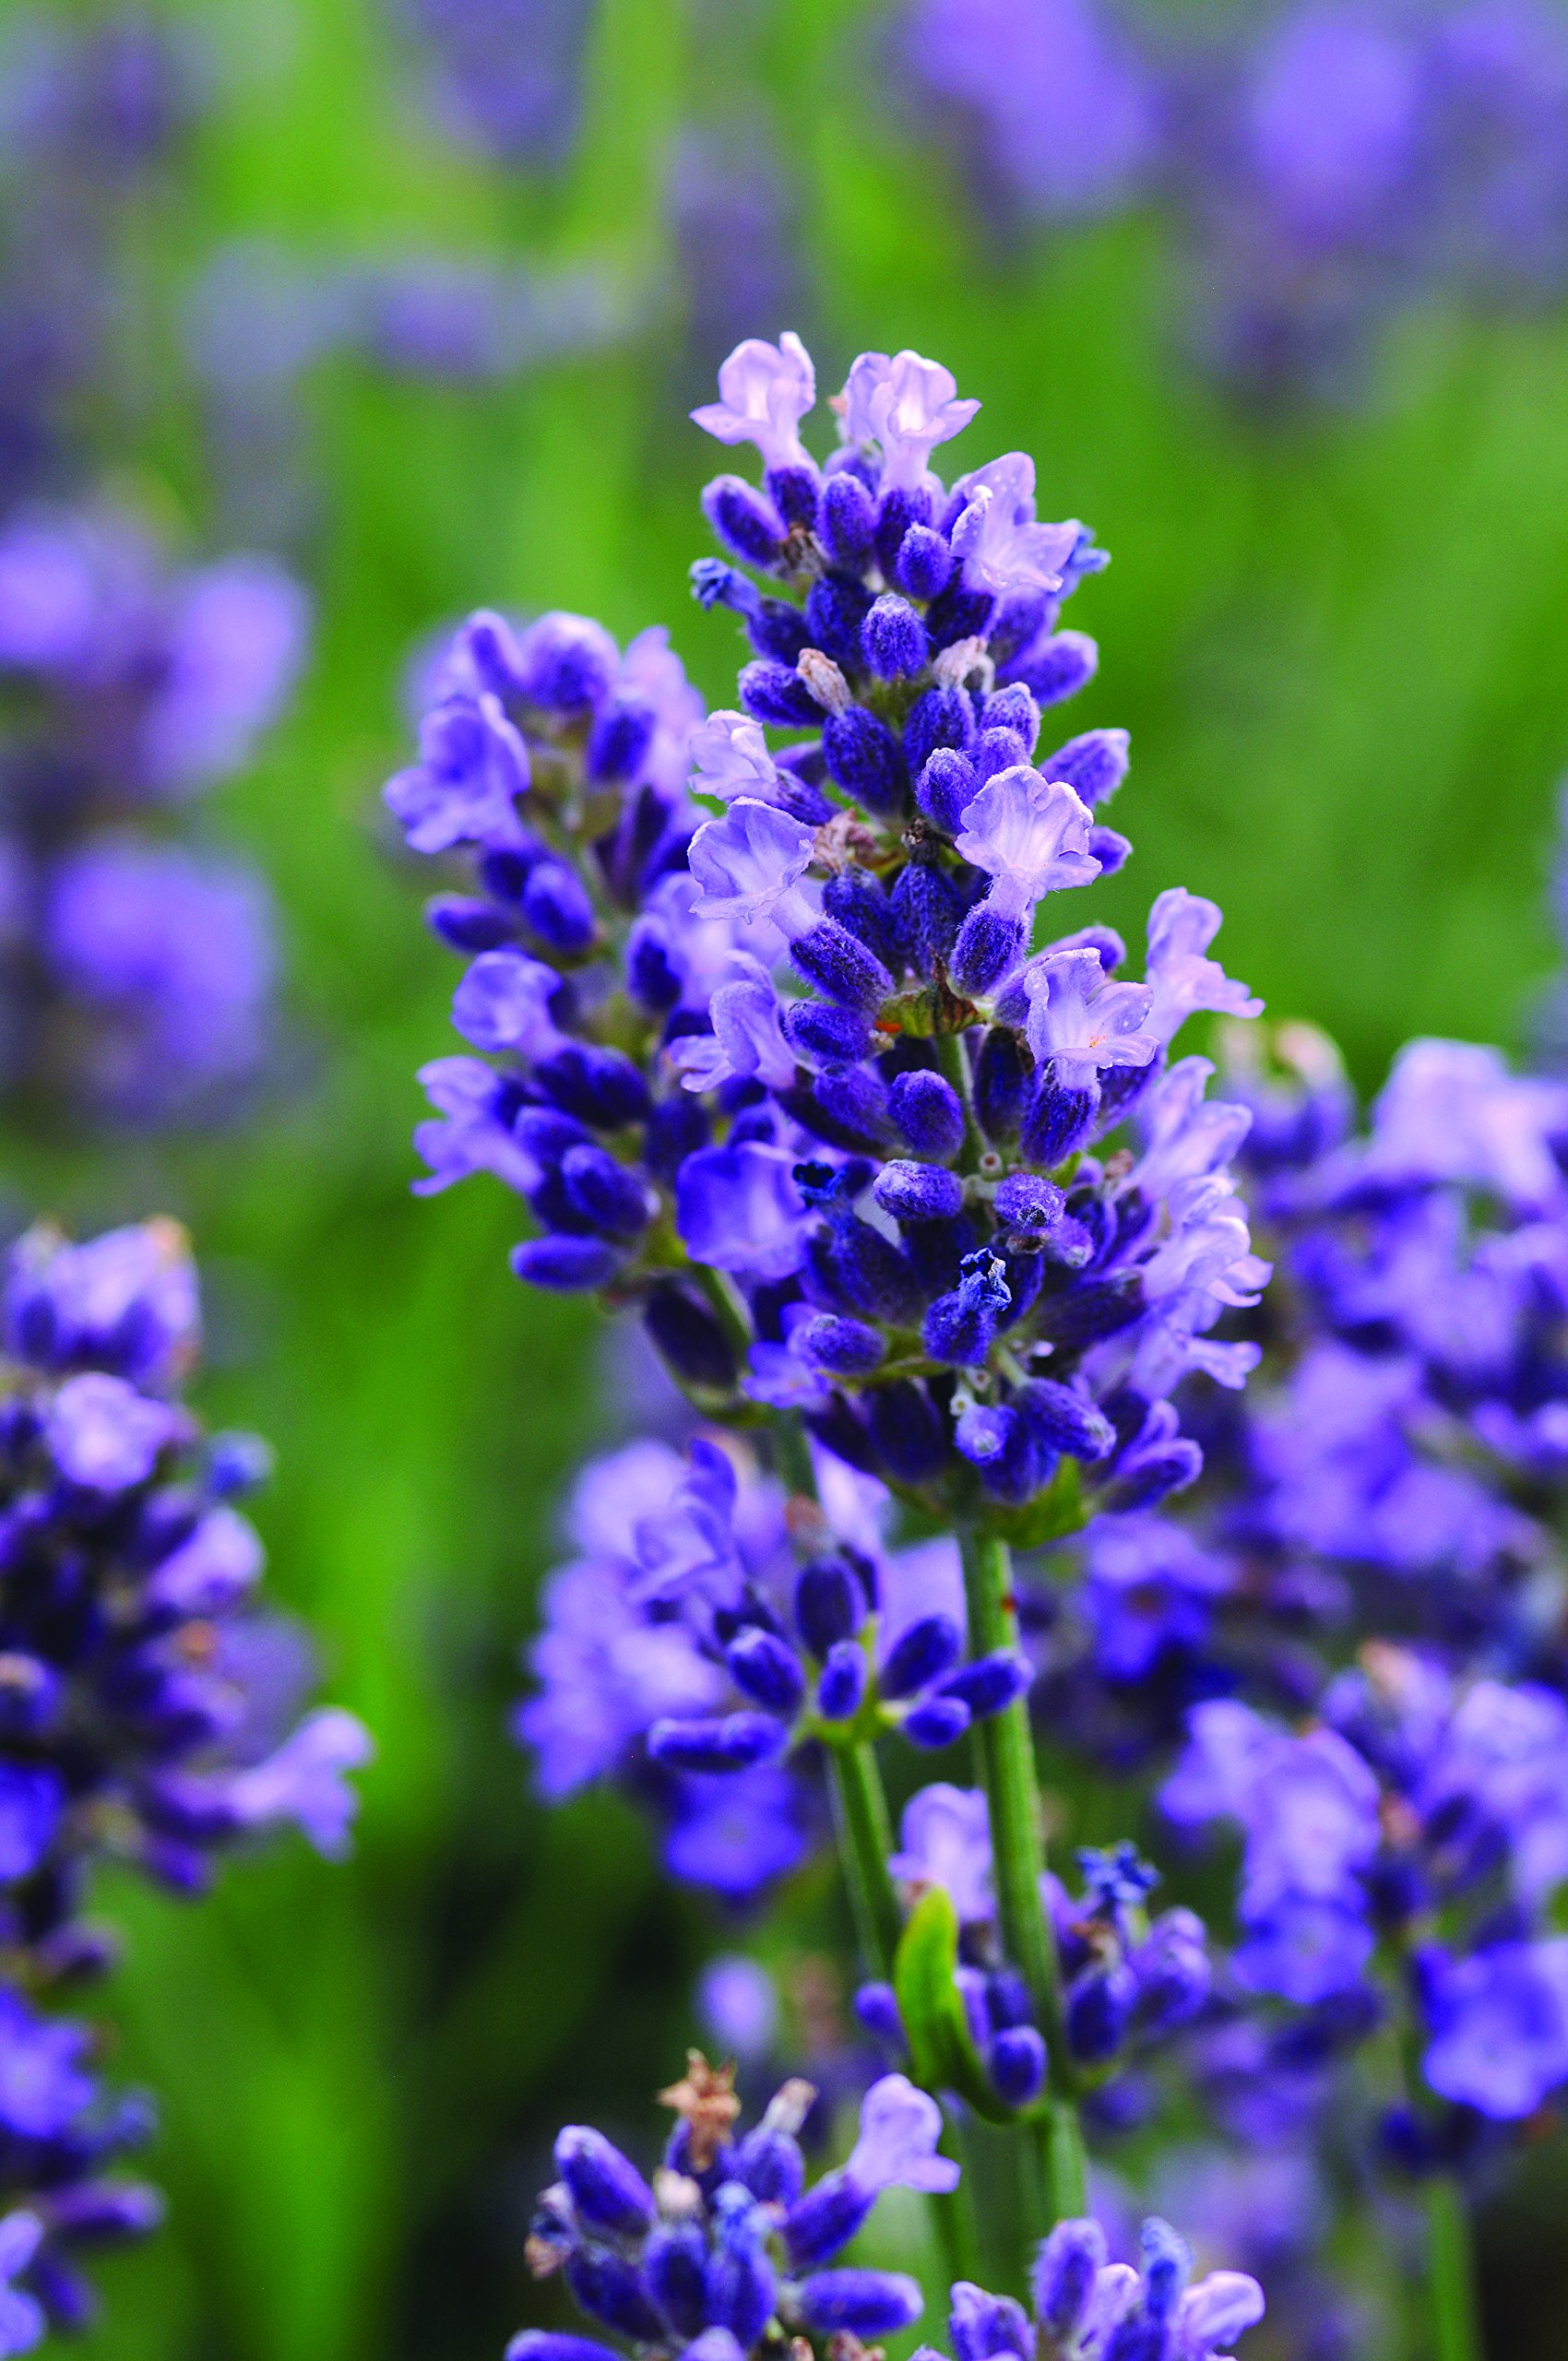 Burpee Lavender 'Superblue' Fragrant Flowers and Foliage, Four 4'' pots by Burpee (Image #1)